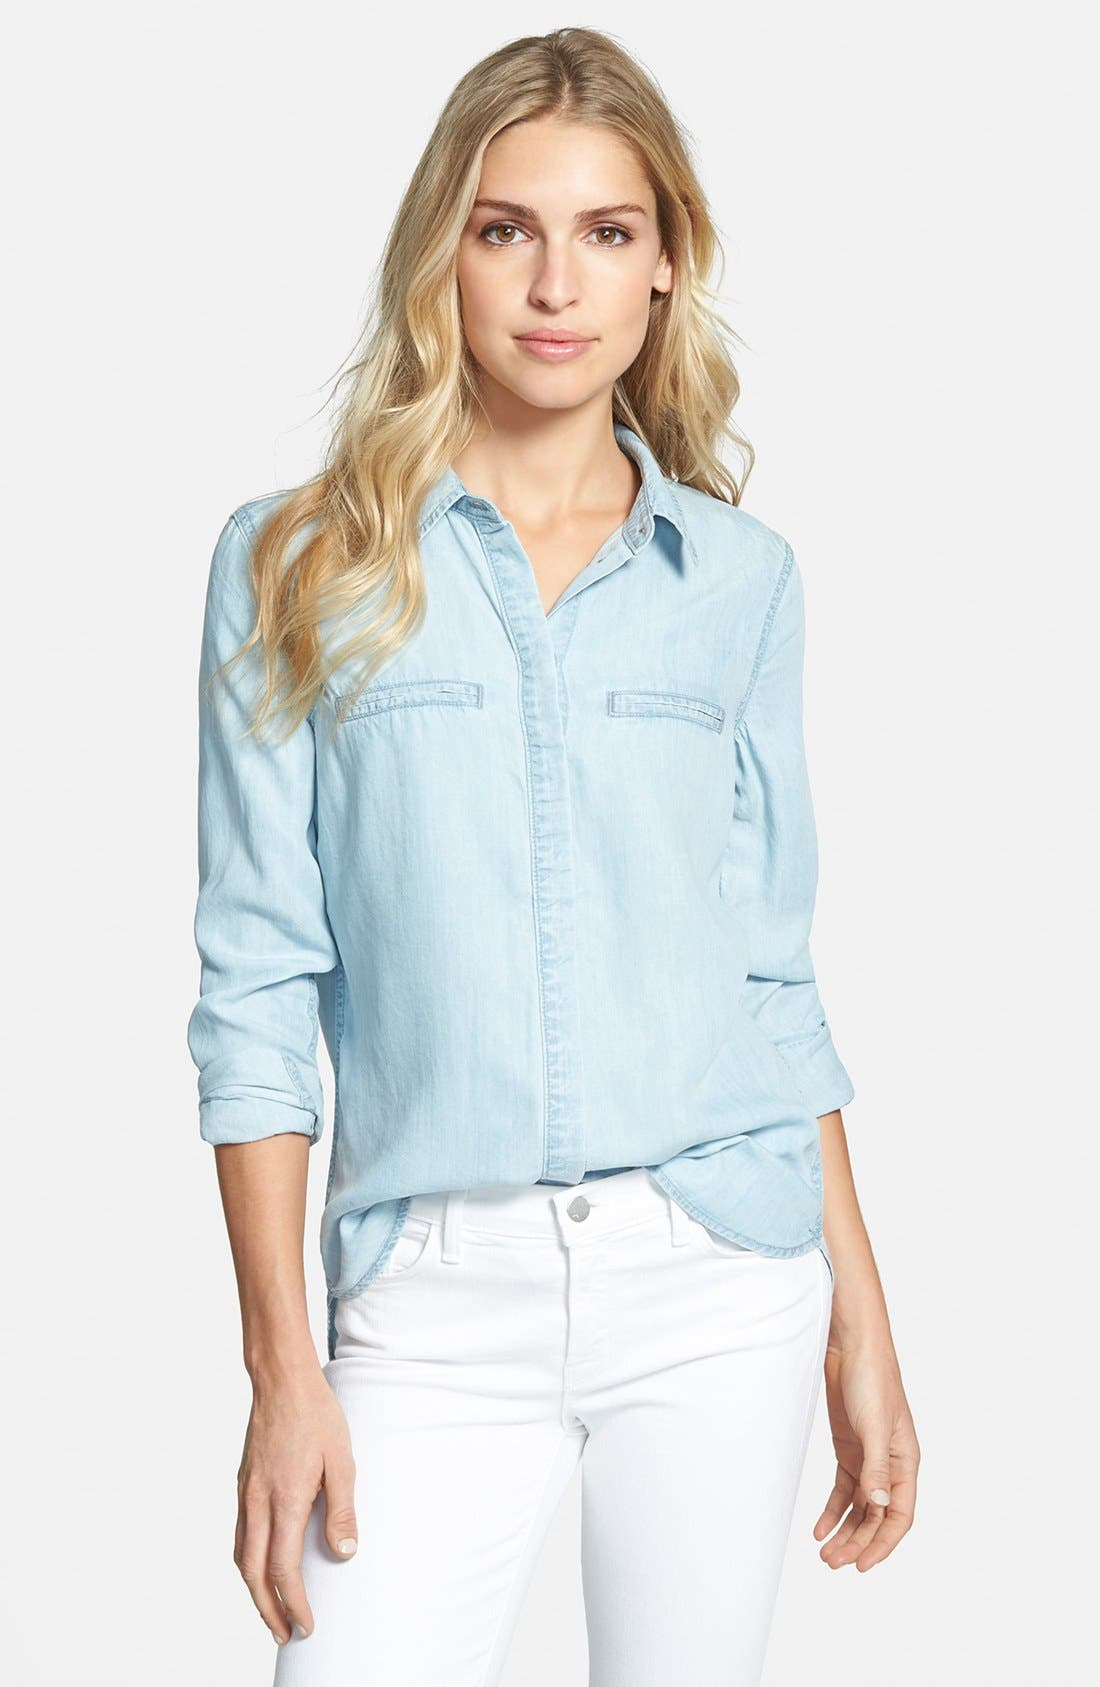 PAIGE Denim 'Bellamy' Button Front Denim Shirt, Main, color, 400